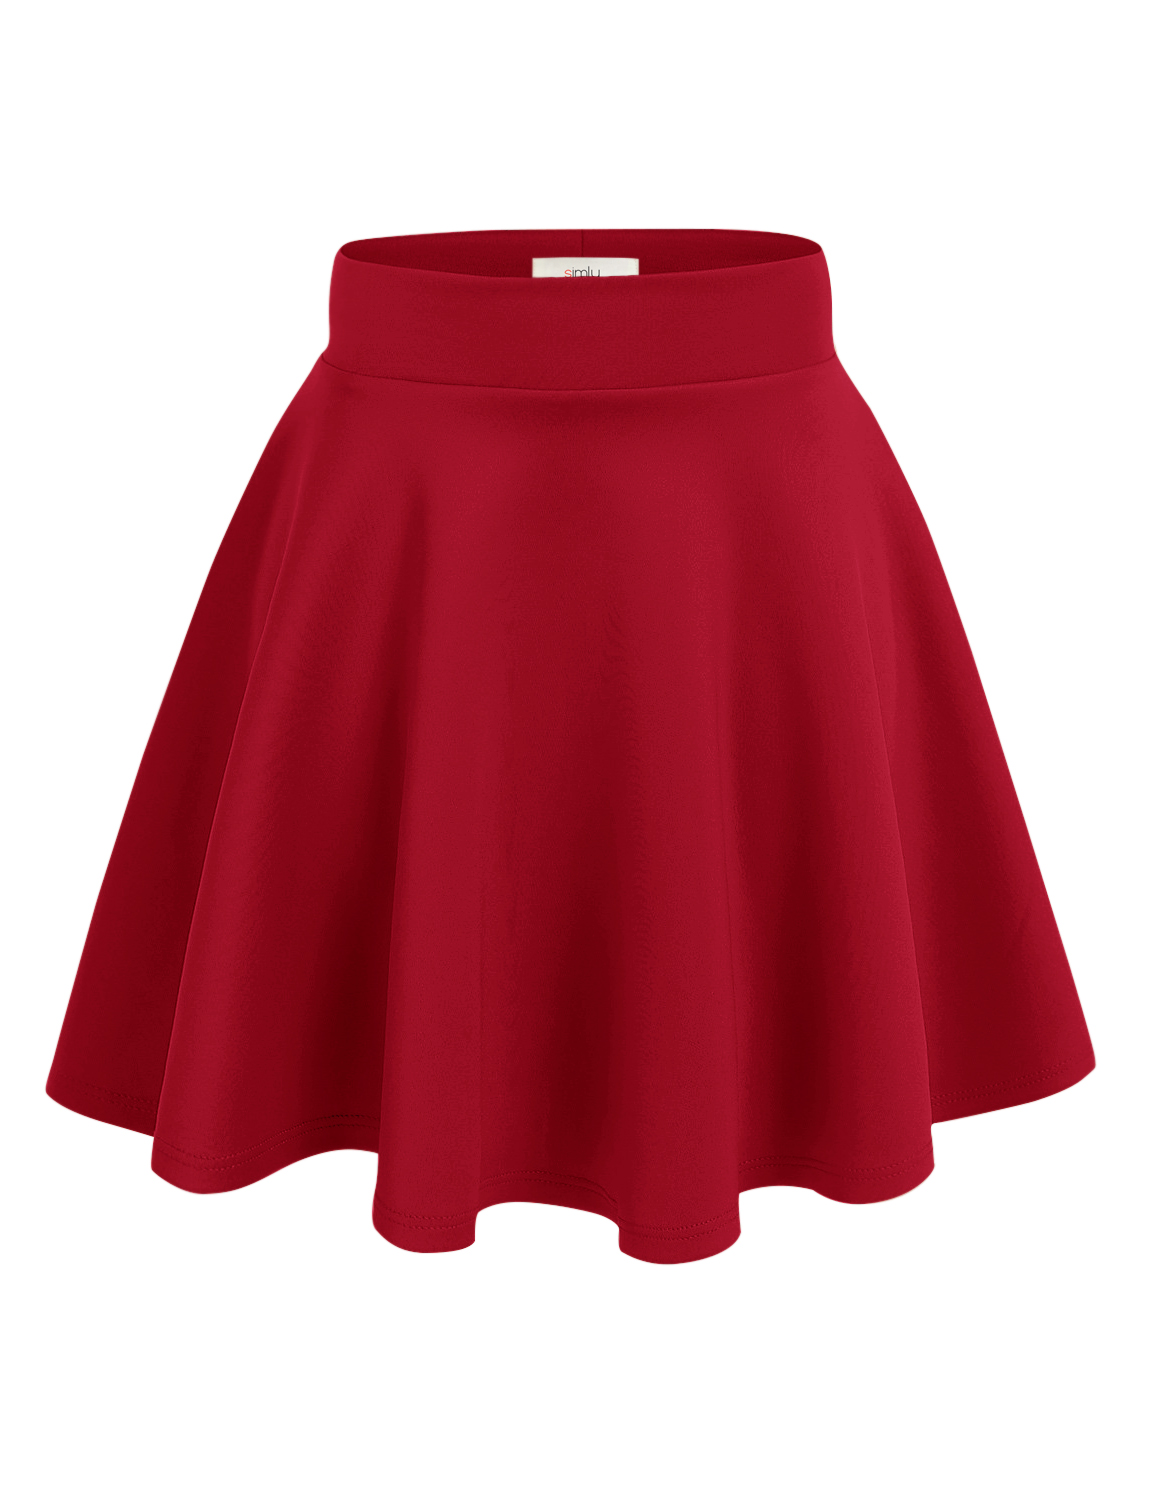 Simlu - Simlu Womens Red Skater Skirt, A Line Flared Skirt Reg